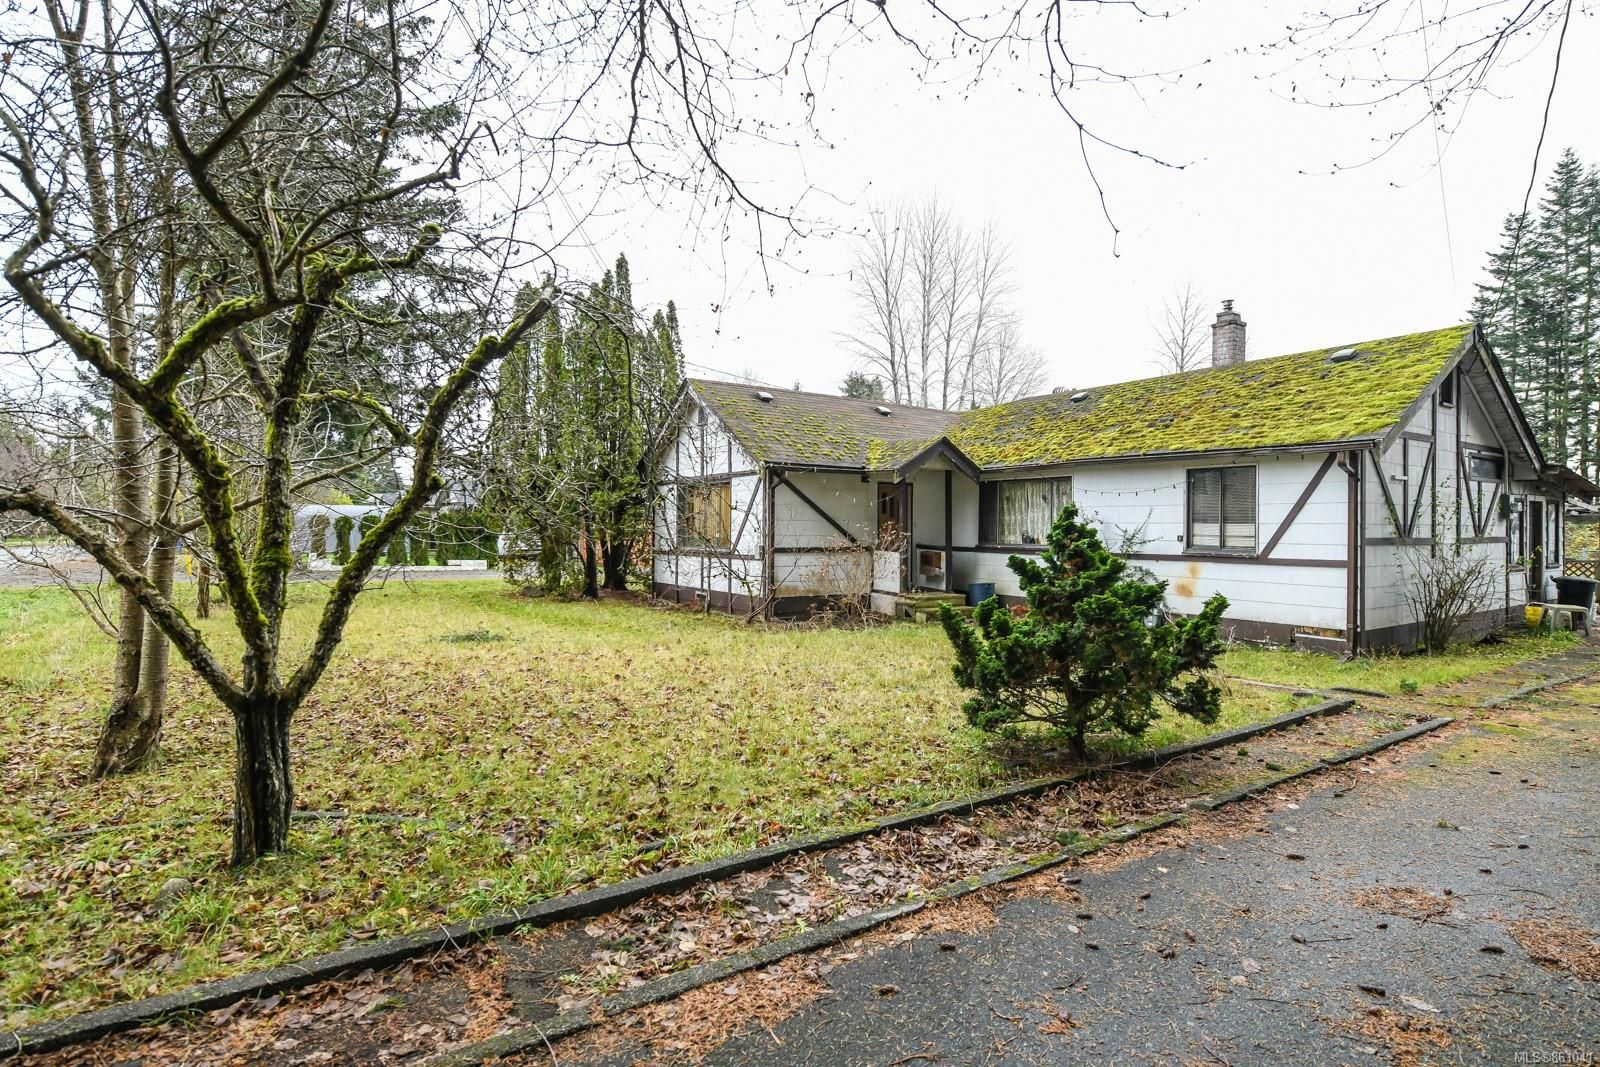 Main Photo: 1790 15th St in : CV Courtenay City Land for sale (Comox Valley)  : MLS®# 861041